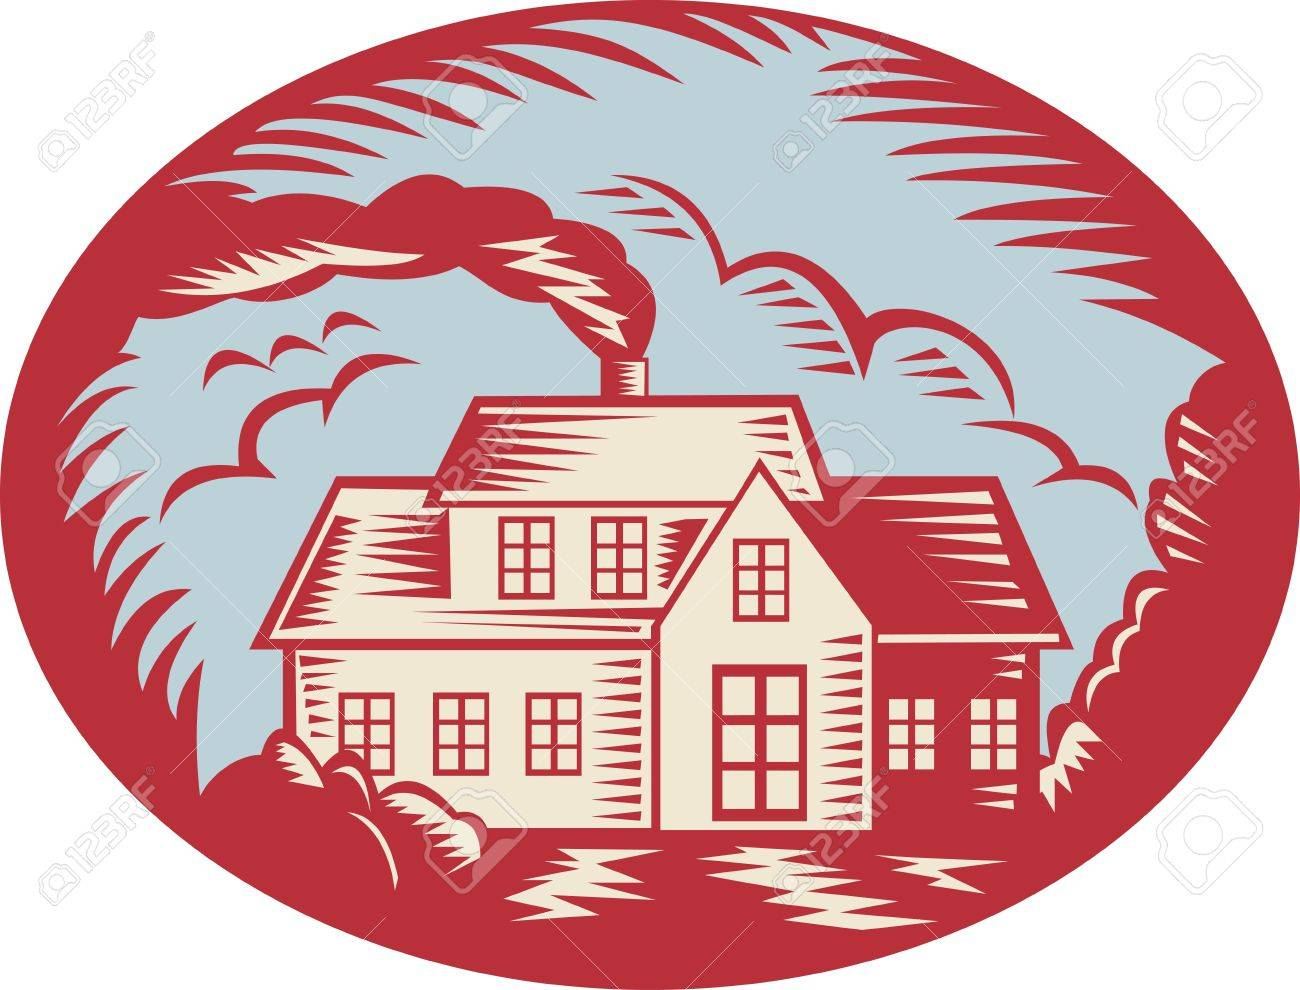 Retro illustration of a house homestead cottage viewed from front set inside ellipse oval done in woodcut style. Stock Vector - 14305980